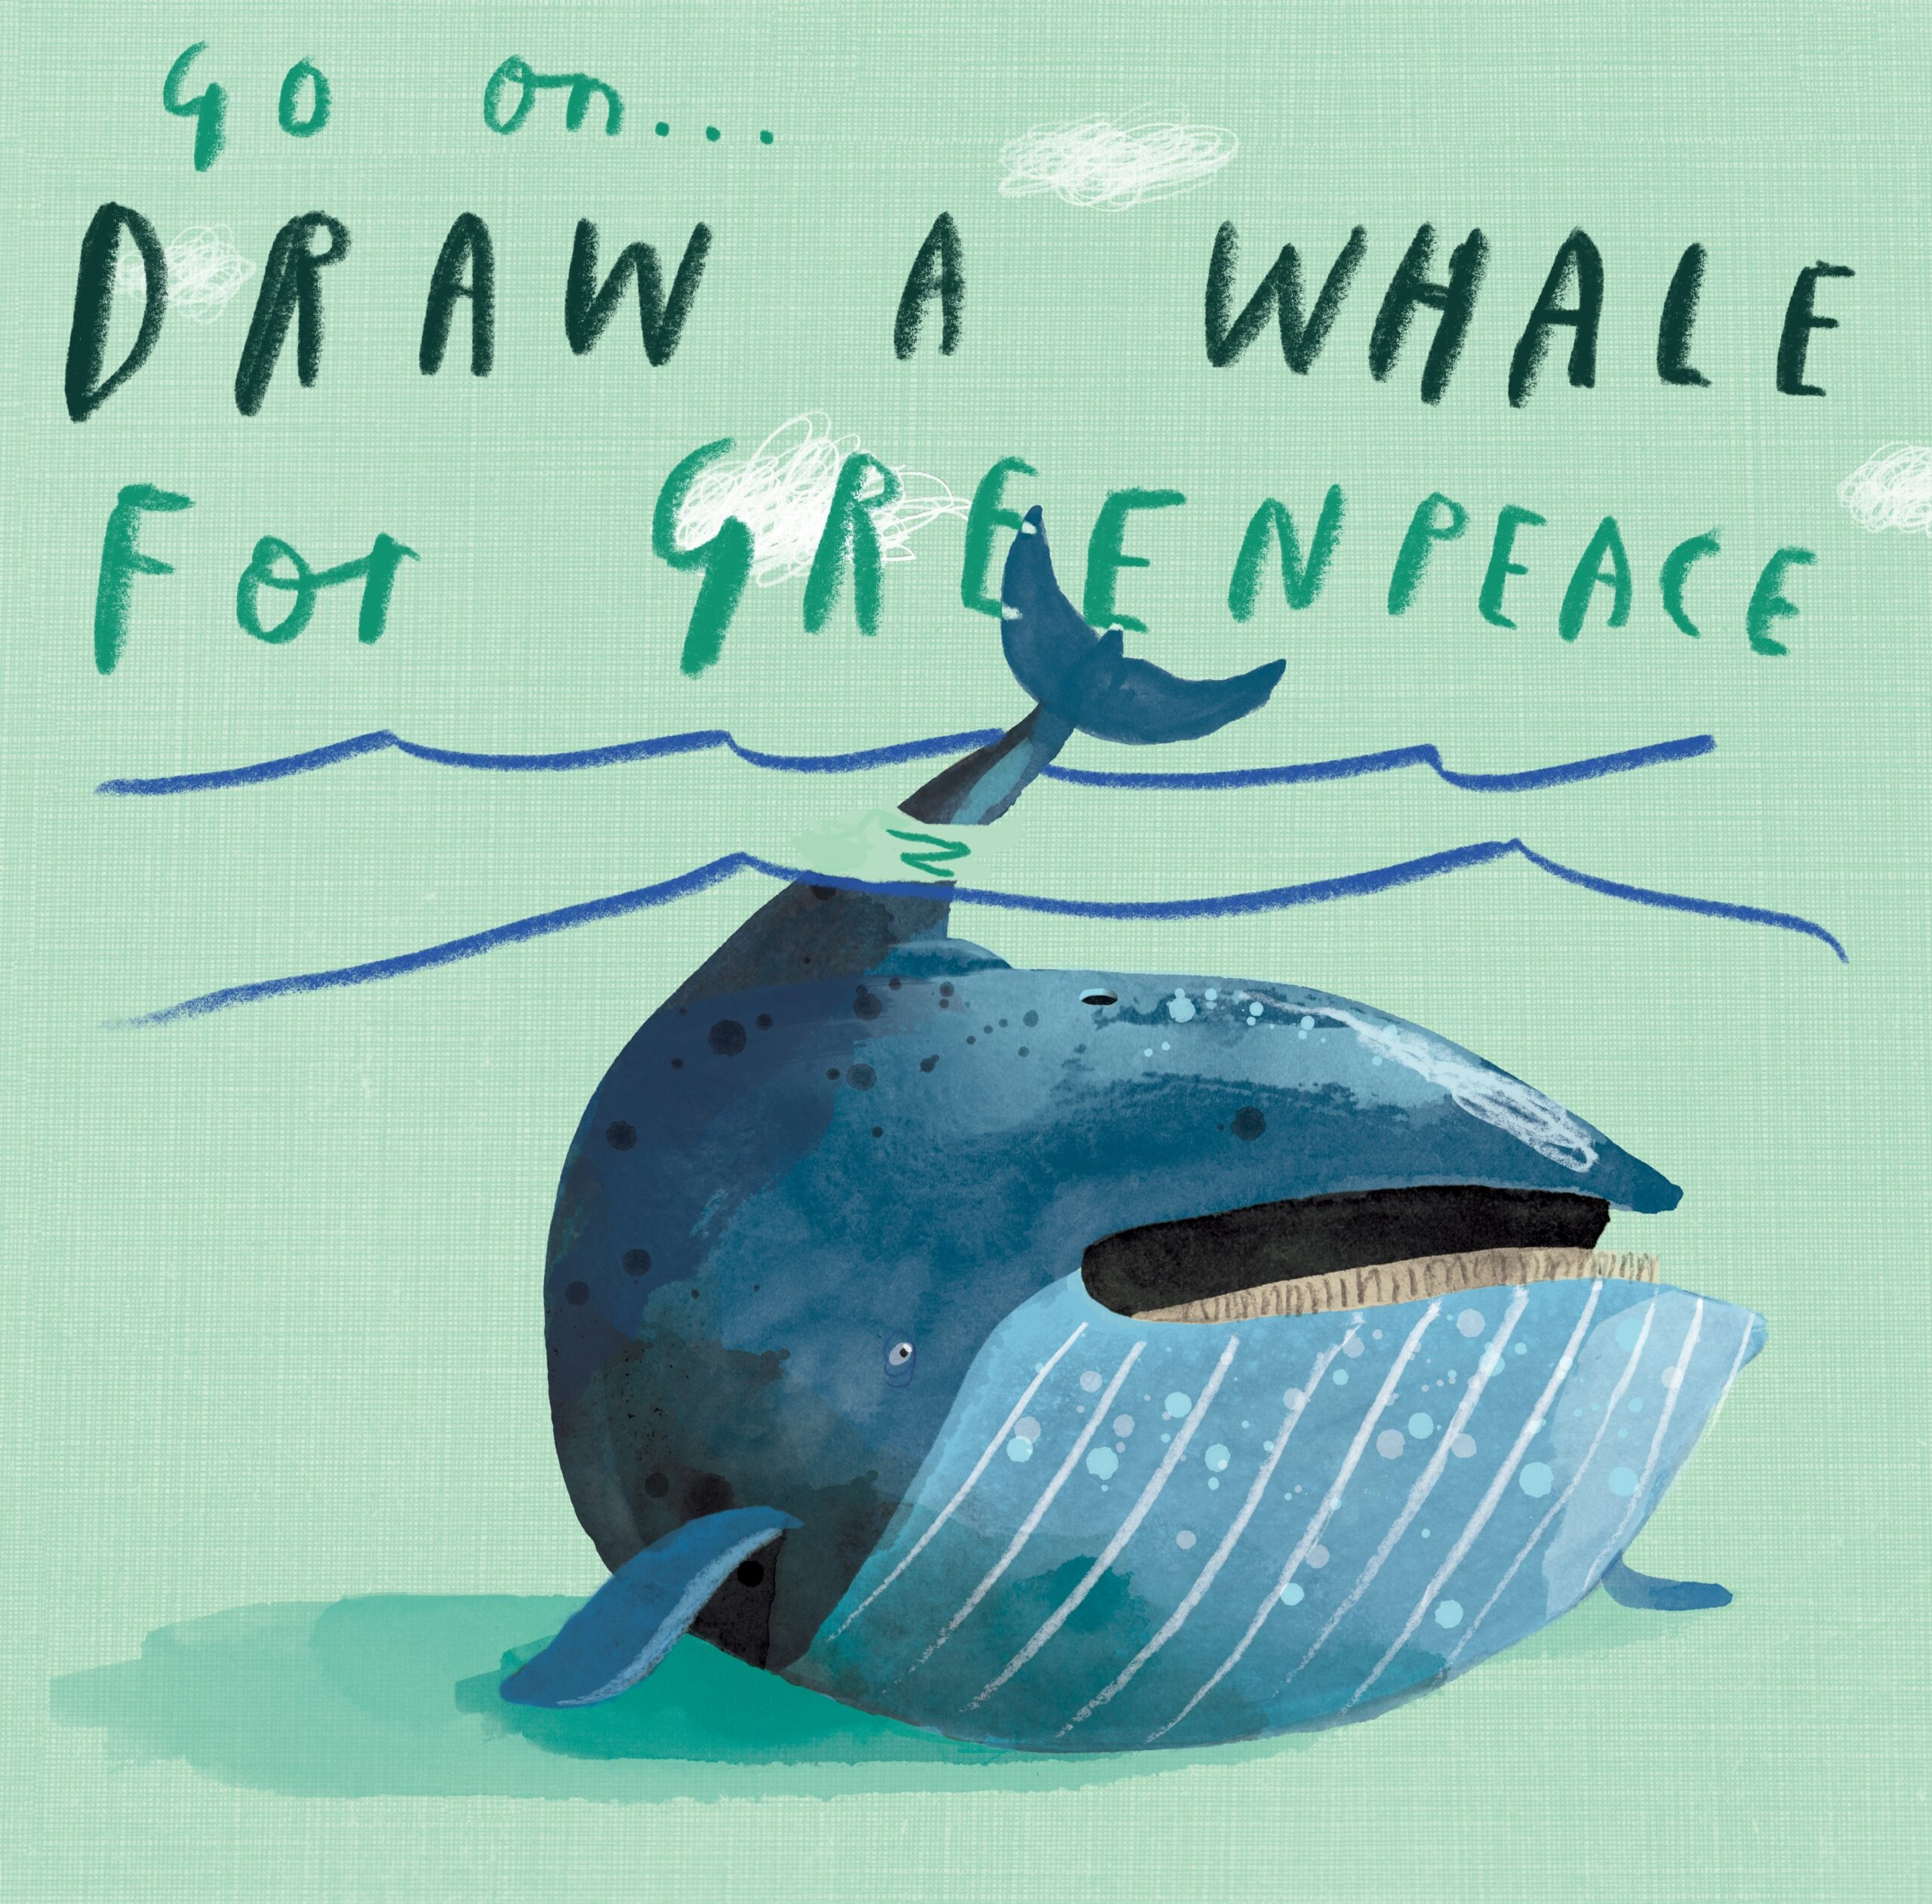 Watercolour drawing of a round whale with its tail sticking out the water, with the text 'Go on... Draw a whale for Greenpeace' over it in crayon